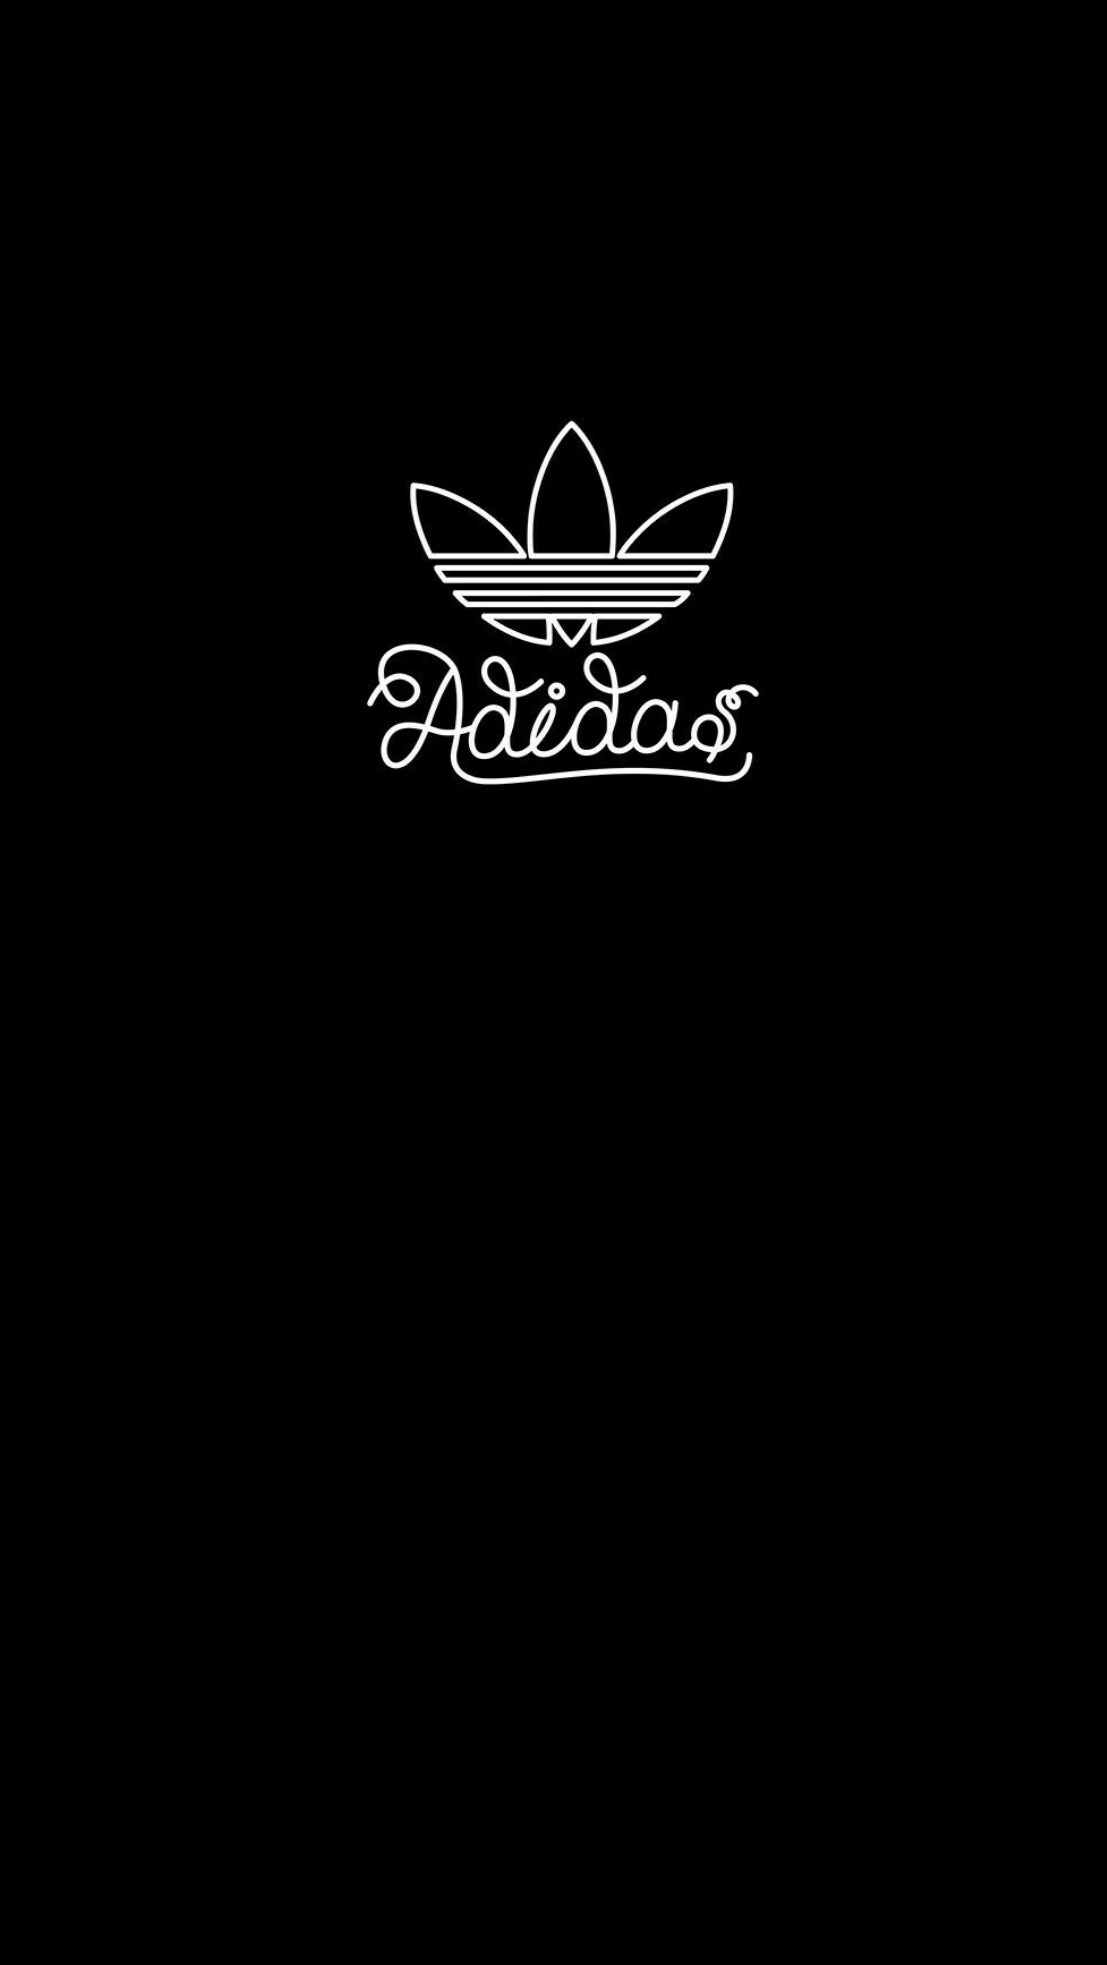 Adidas Wallpapers (76  images)